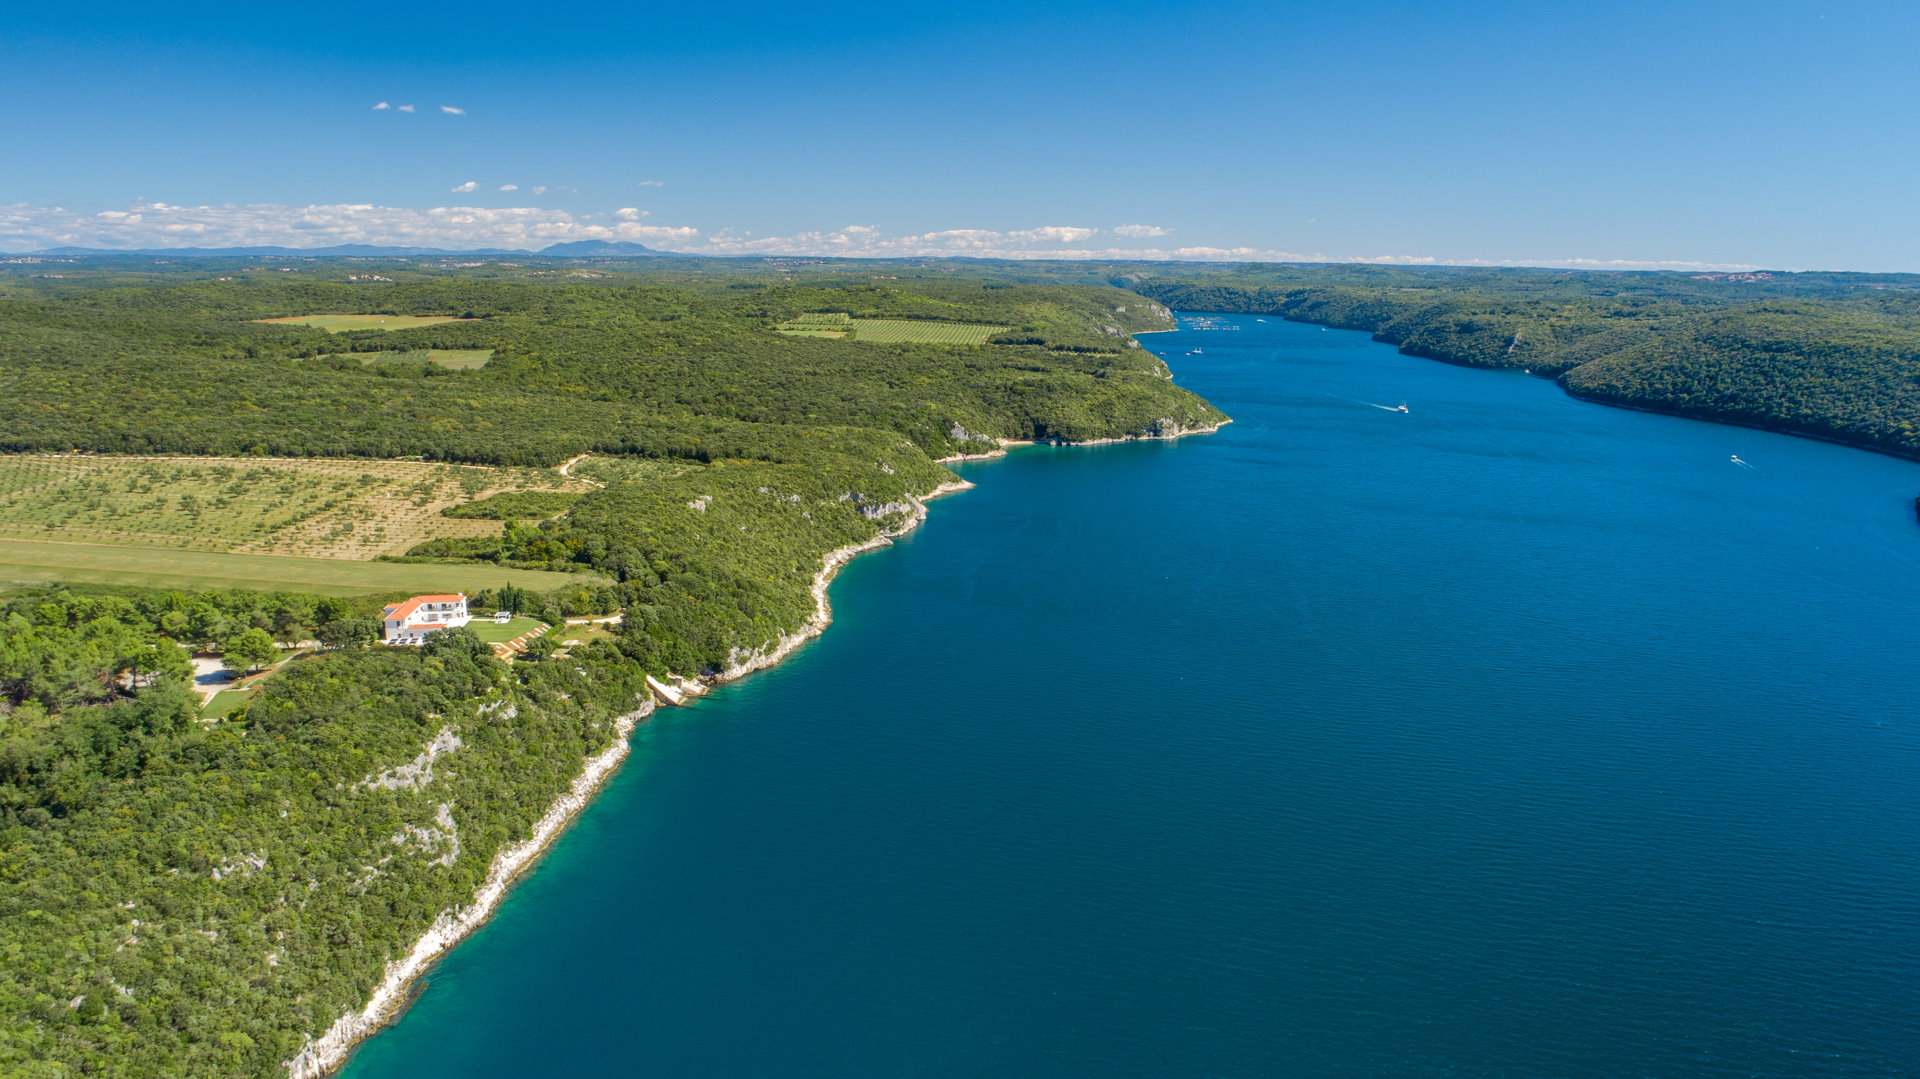 Lim Bay in Istria